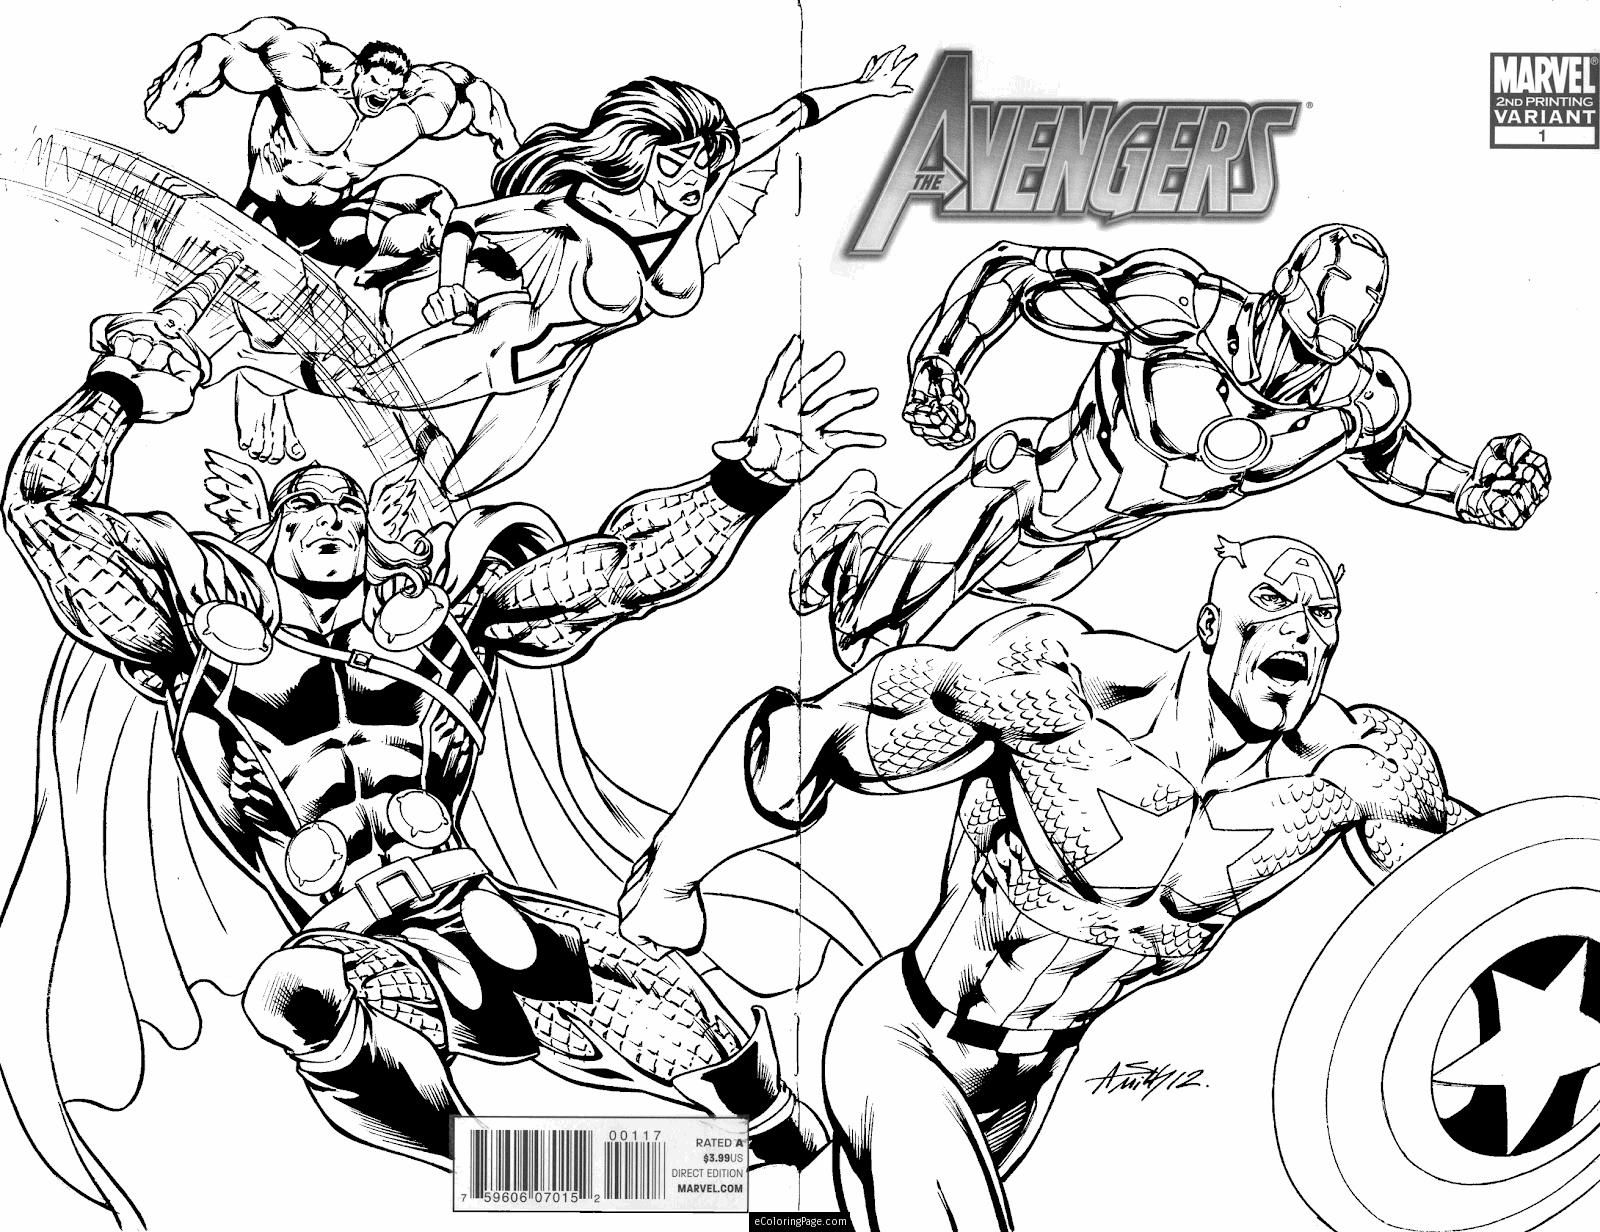 Marvel Superheroes Avengers In Action Coloring Page for Kids Printable Of Superheroes Printable Coloring Pages Gidiyedformapolitica Download